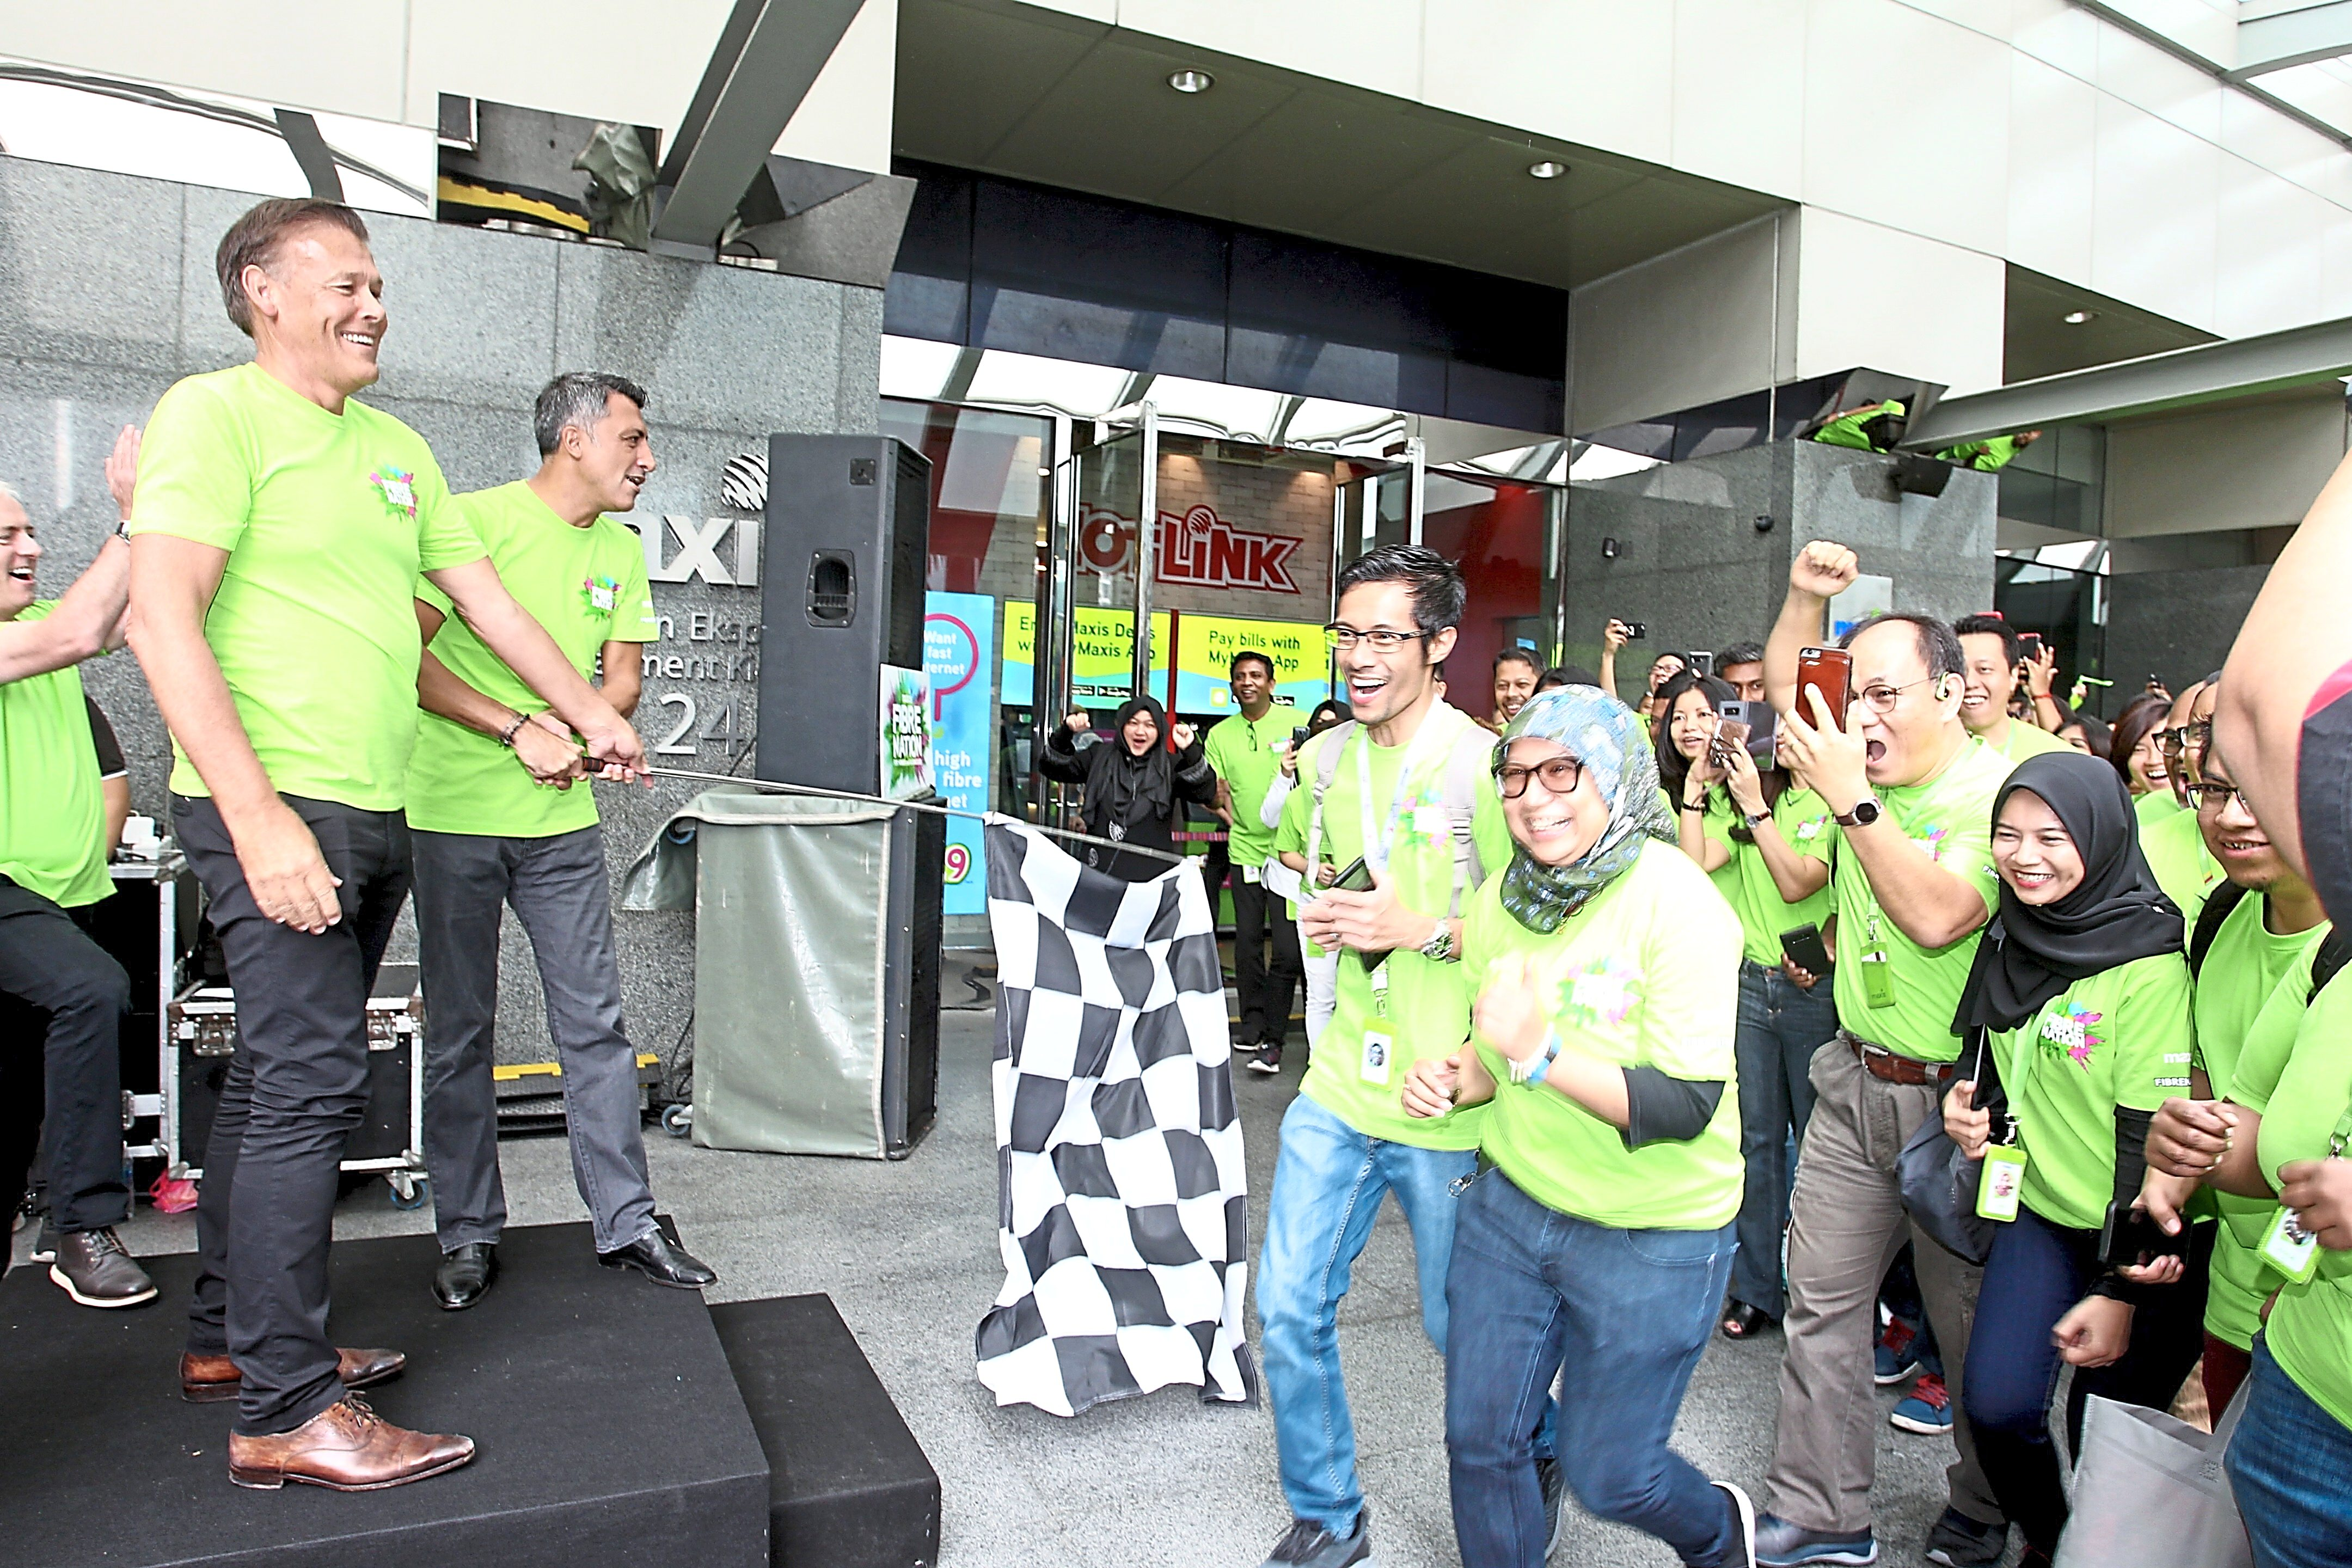 Nason (left) flagging off the employees at Maxis Centre in Suria KLCC.